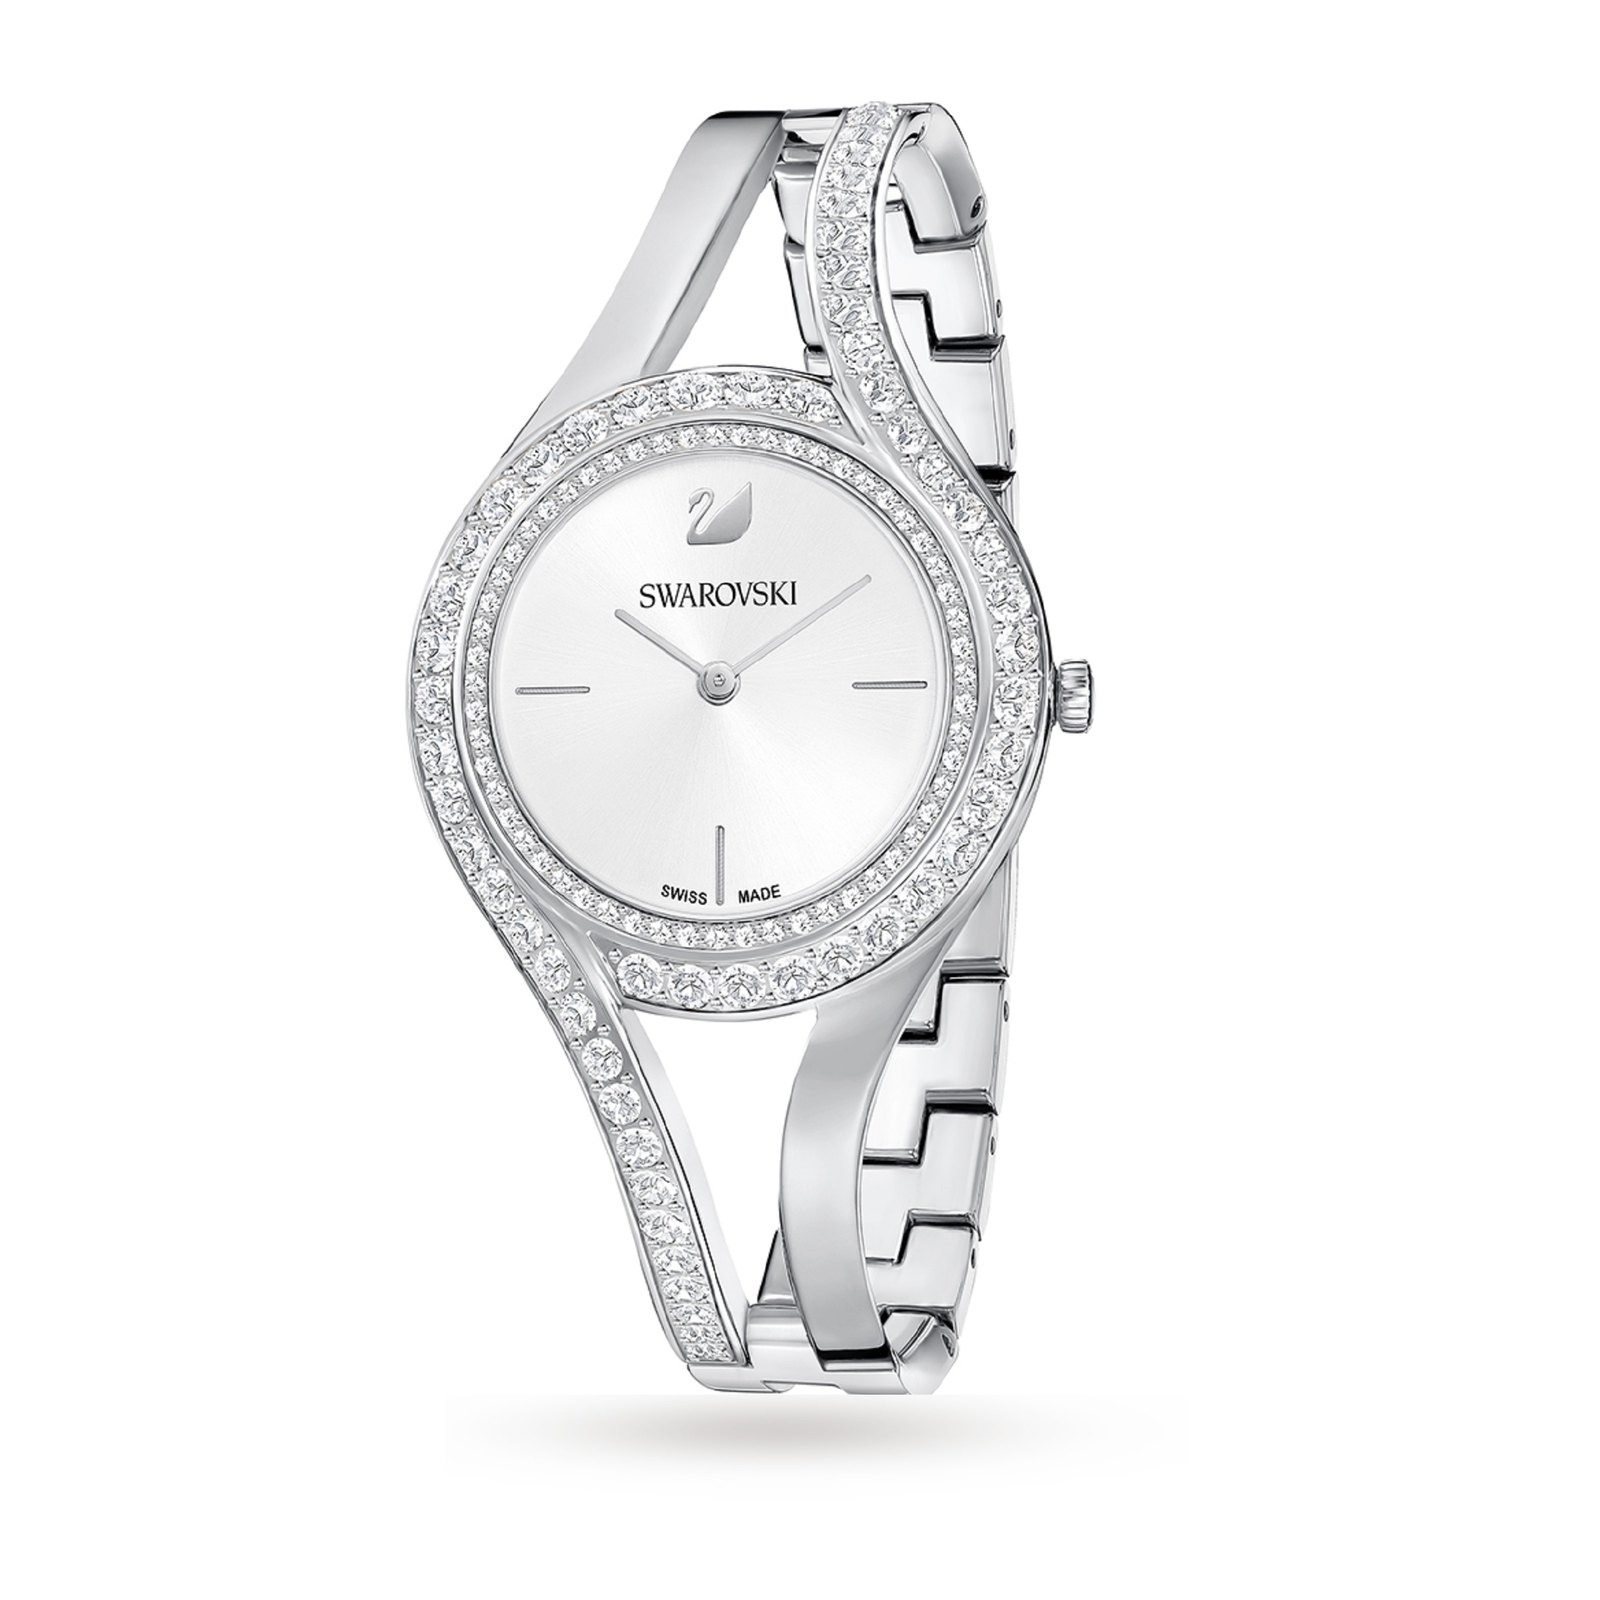 SWAROVSKI Eternal White Watch